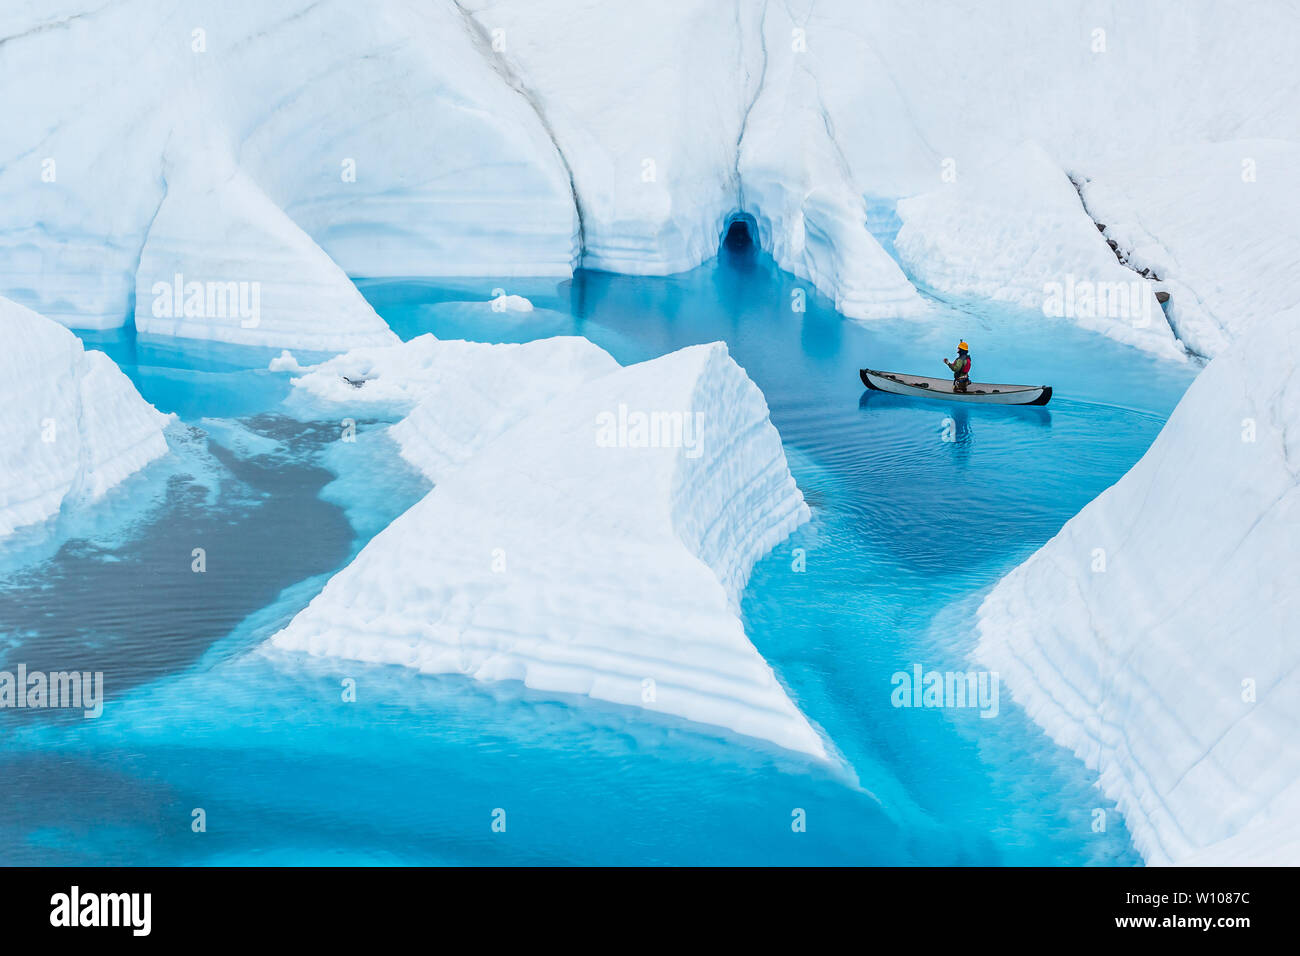 On the Matanuska Glacier in Alaska, an ice climbing guide floats an inflatable canoe on a deep blue lake on the glacier. The narrow flooded canyons le Stock Photo